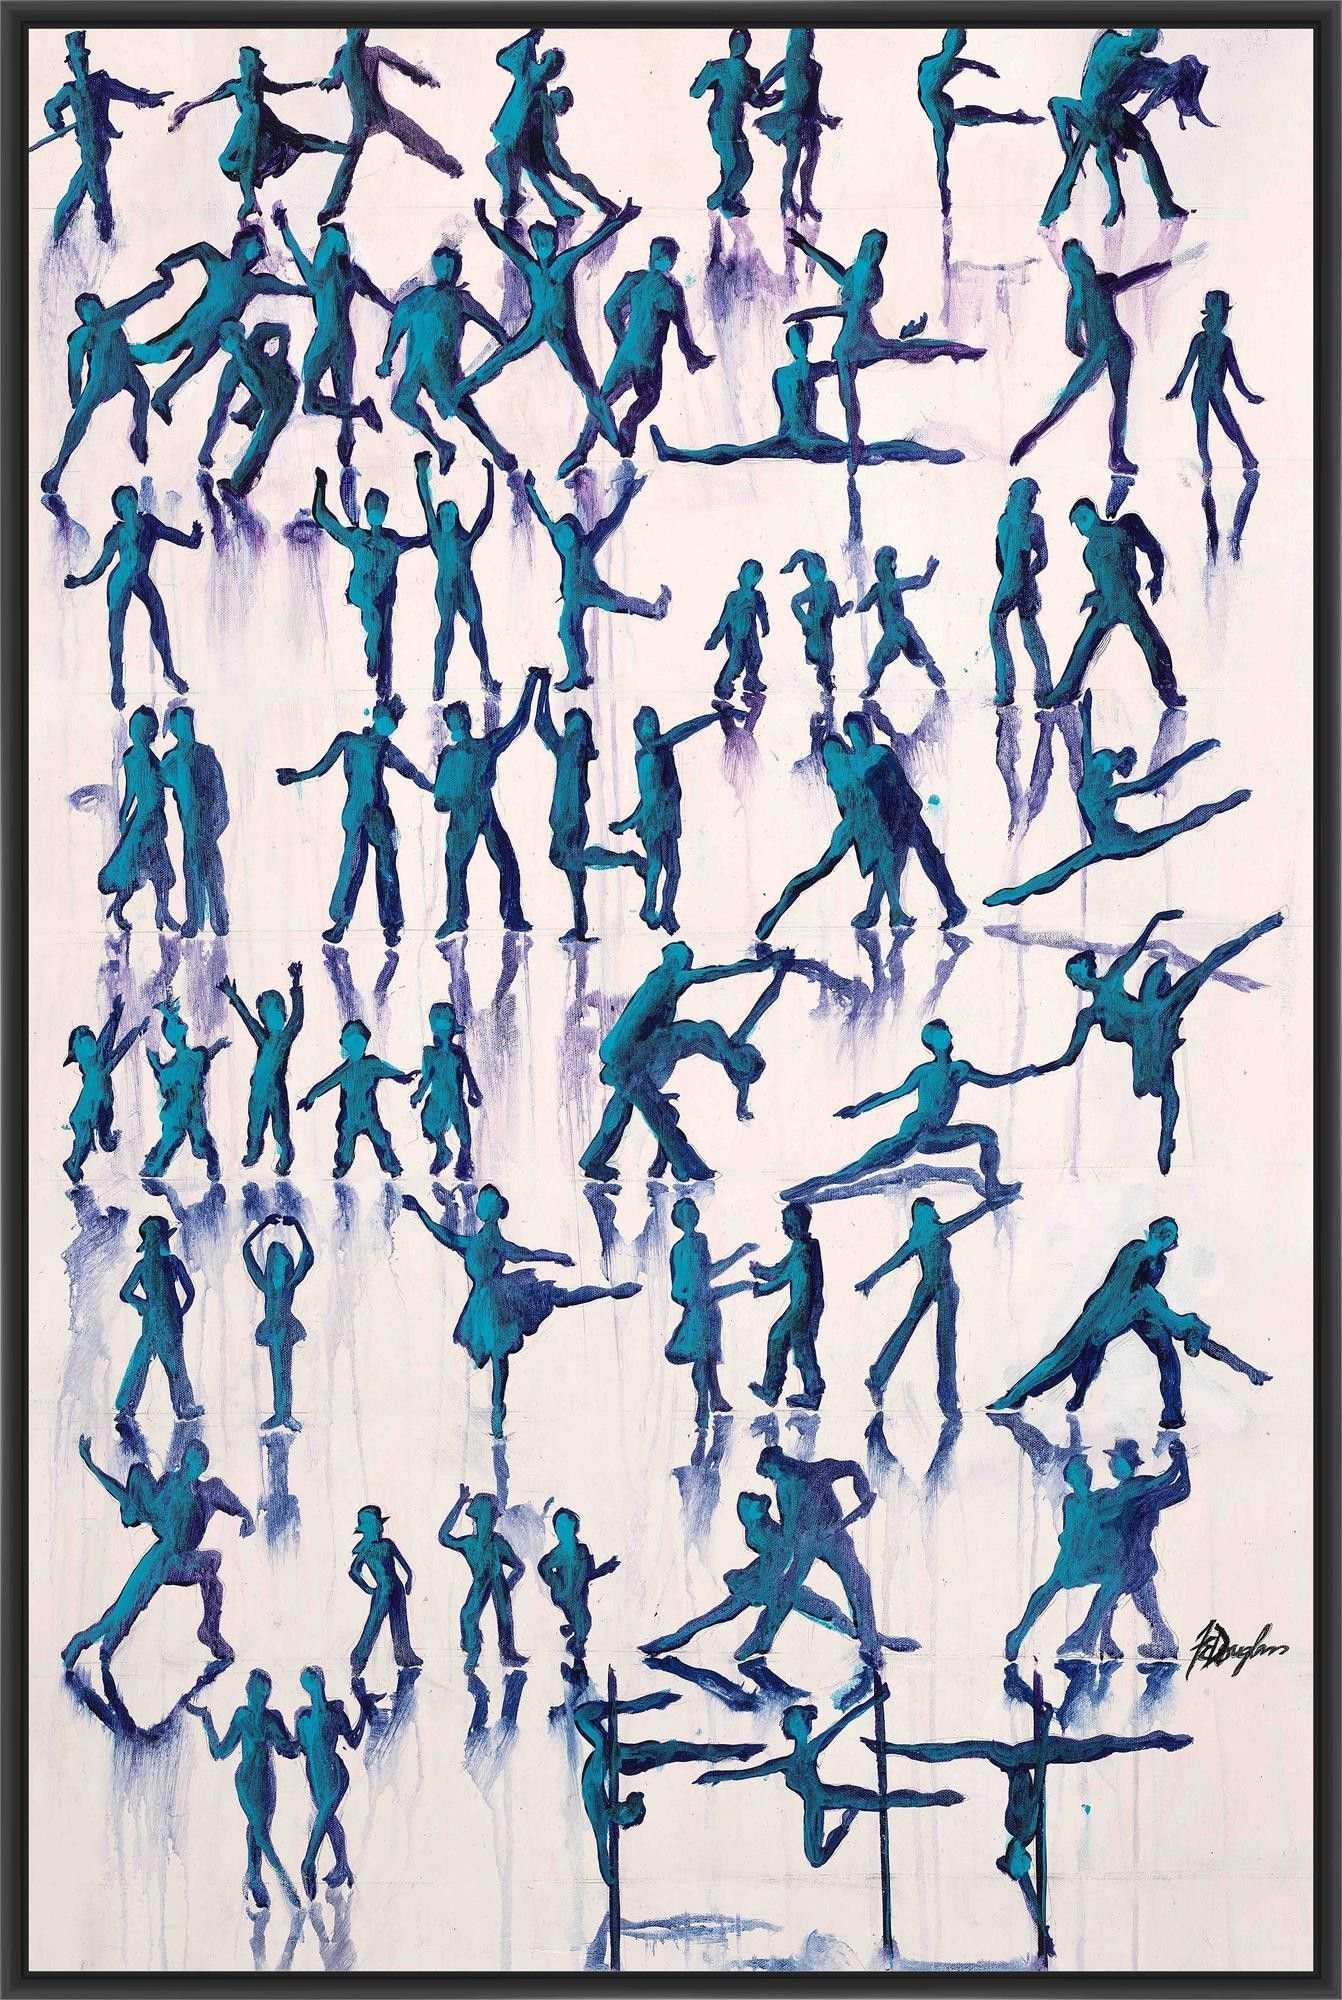 LETS DANCE EVERYDAY 28L X 28H Floater Framed Art Giclee Wrapped Canvas